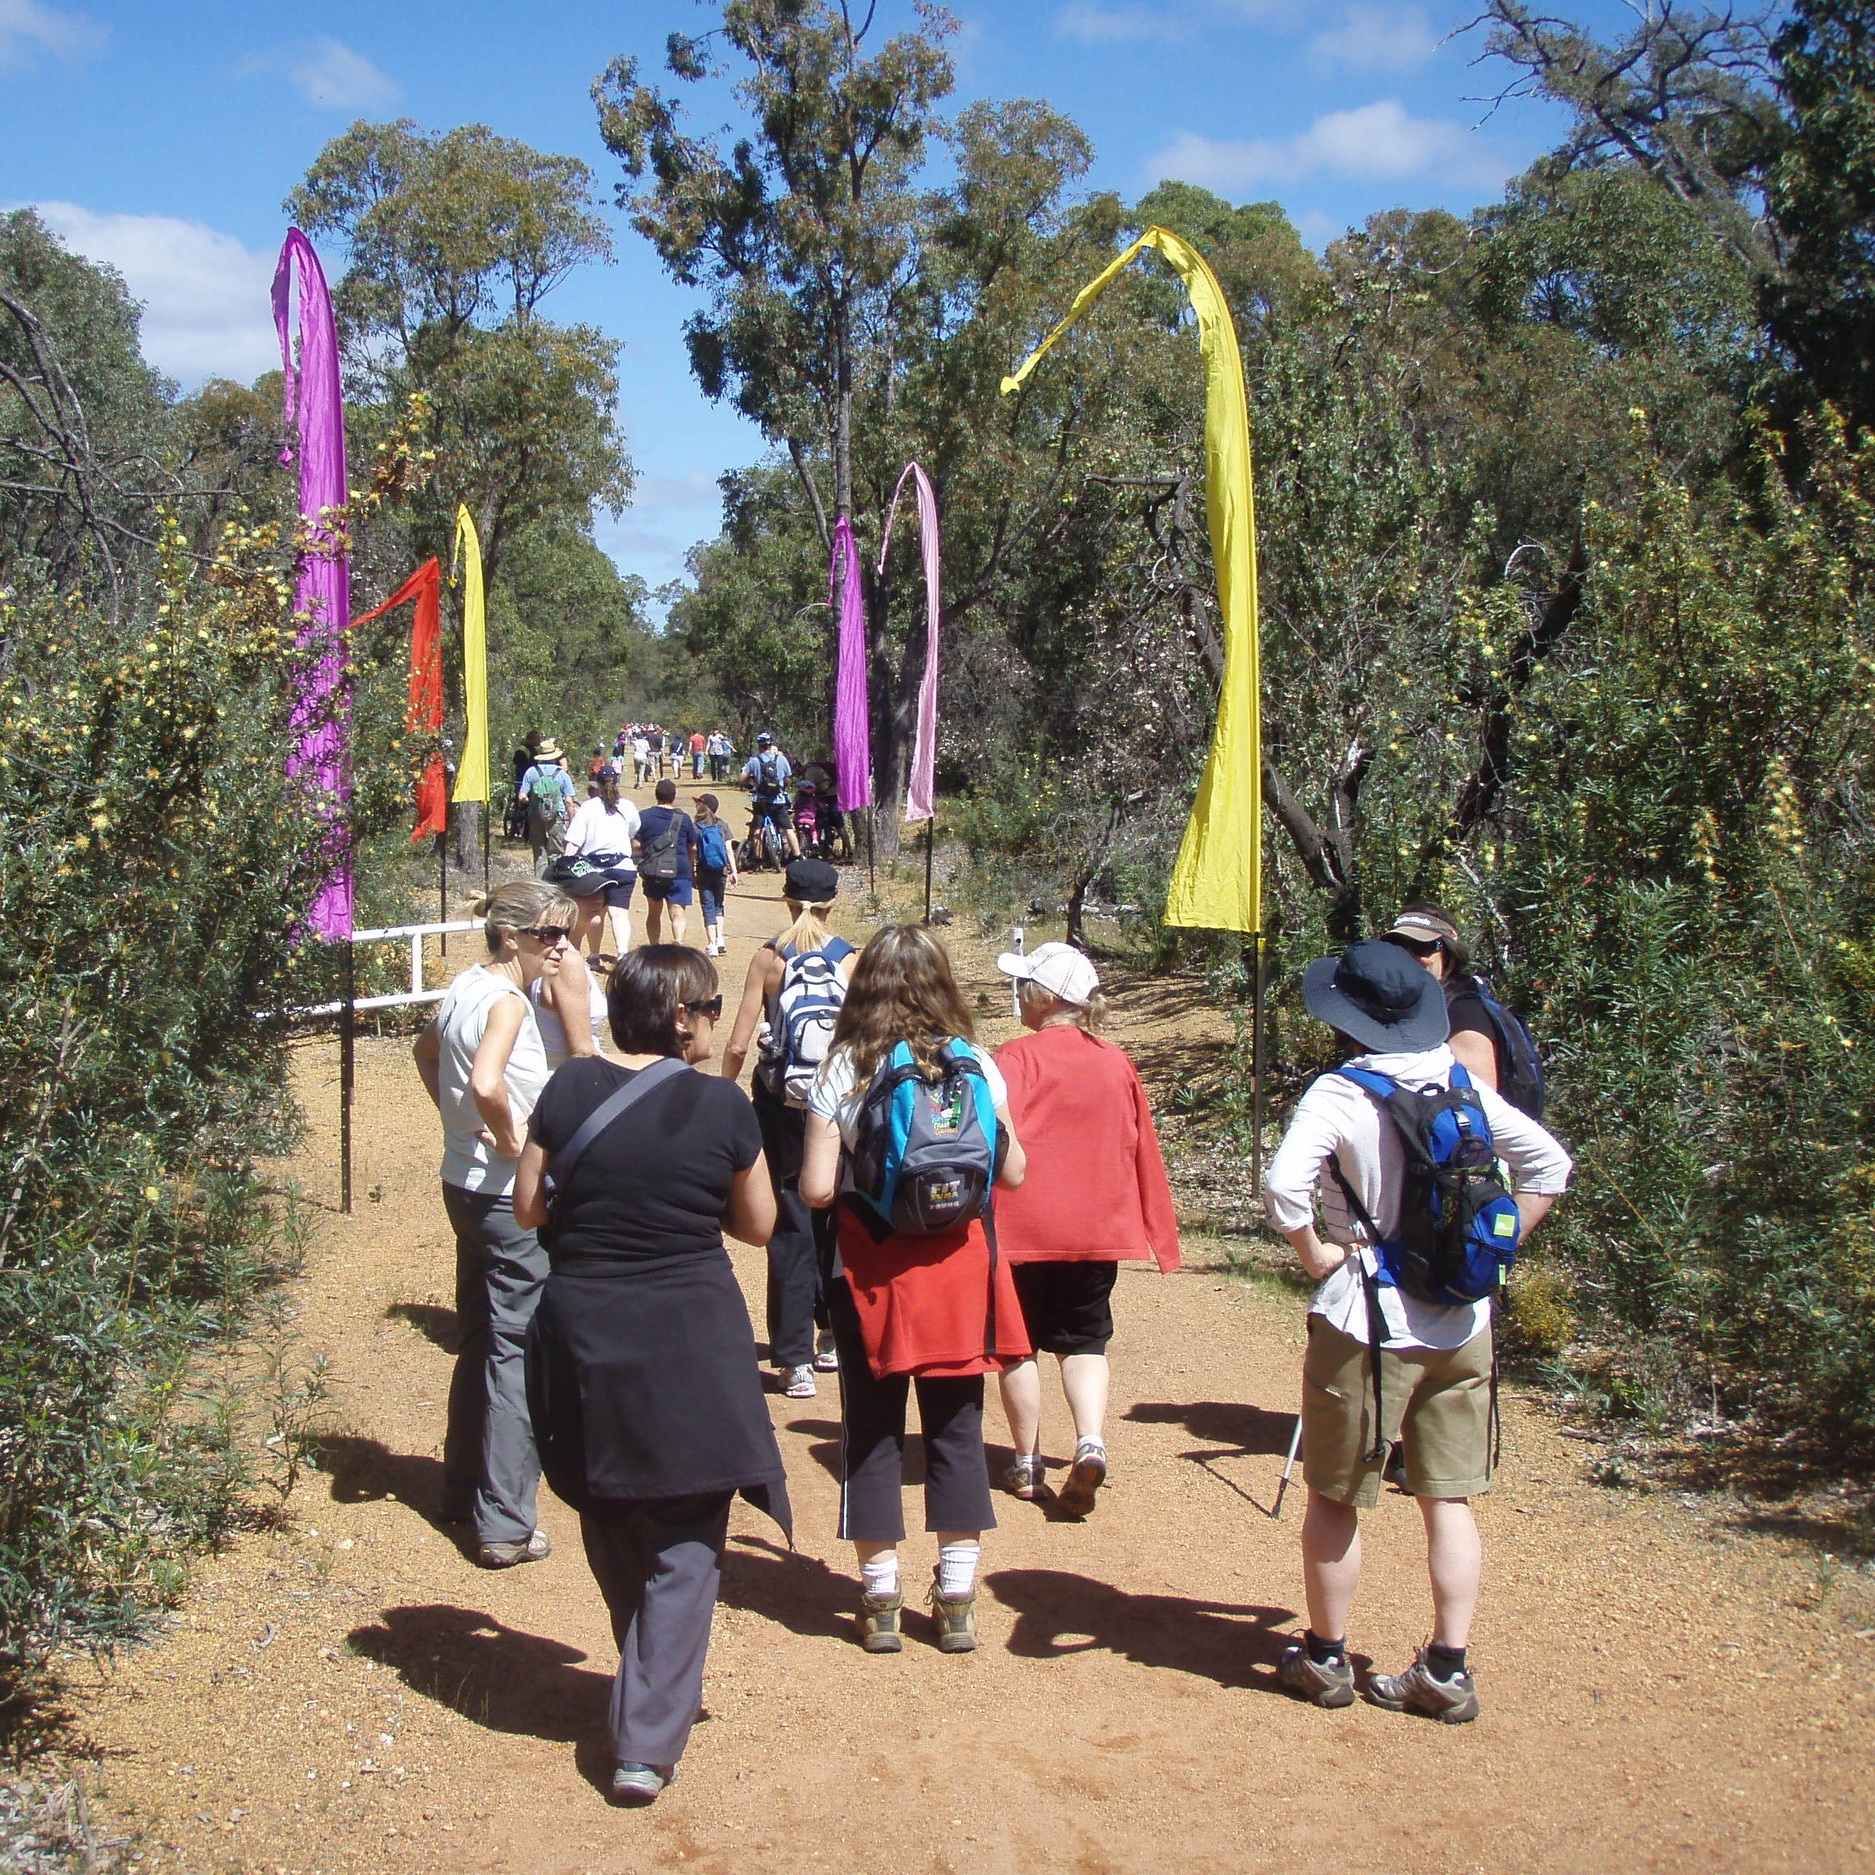 Trek the wildflower trail - Follow a 500 metre trail from the Mundaring Station Master's House to Craigie House (home of Mundaring Sharing), and find out more about the area's natural and built heritage along the way.10am - 3pmFREE